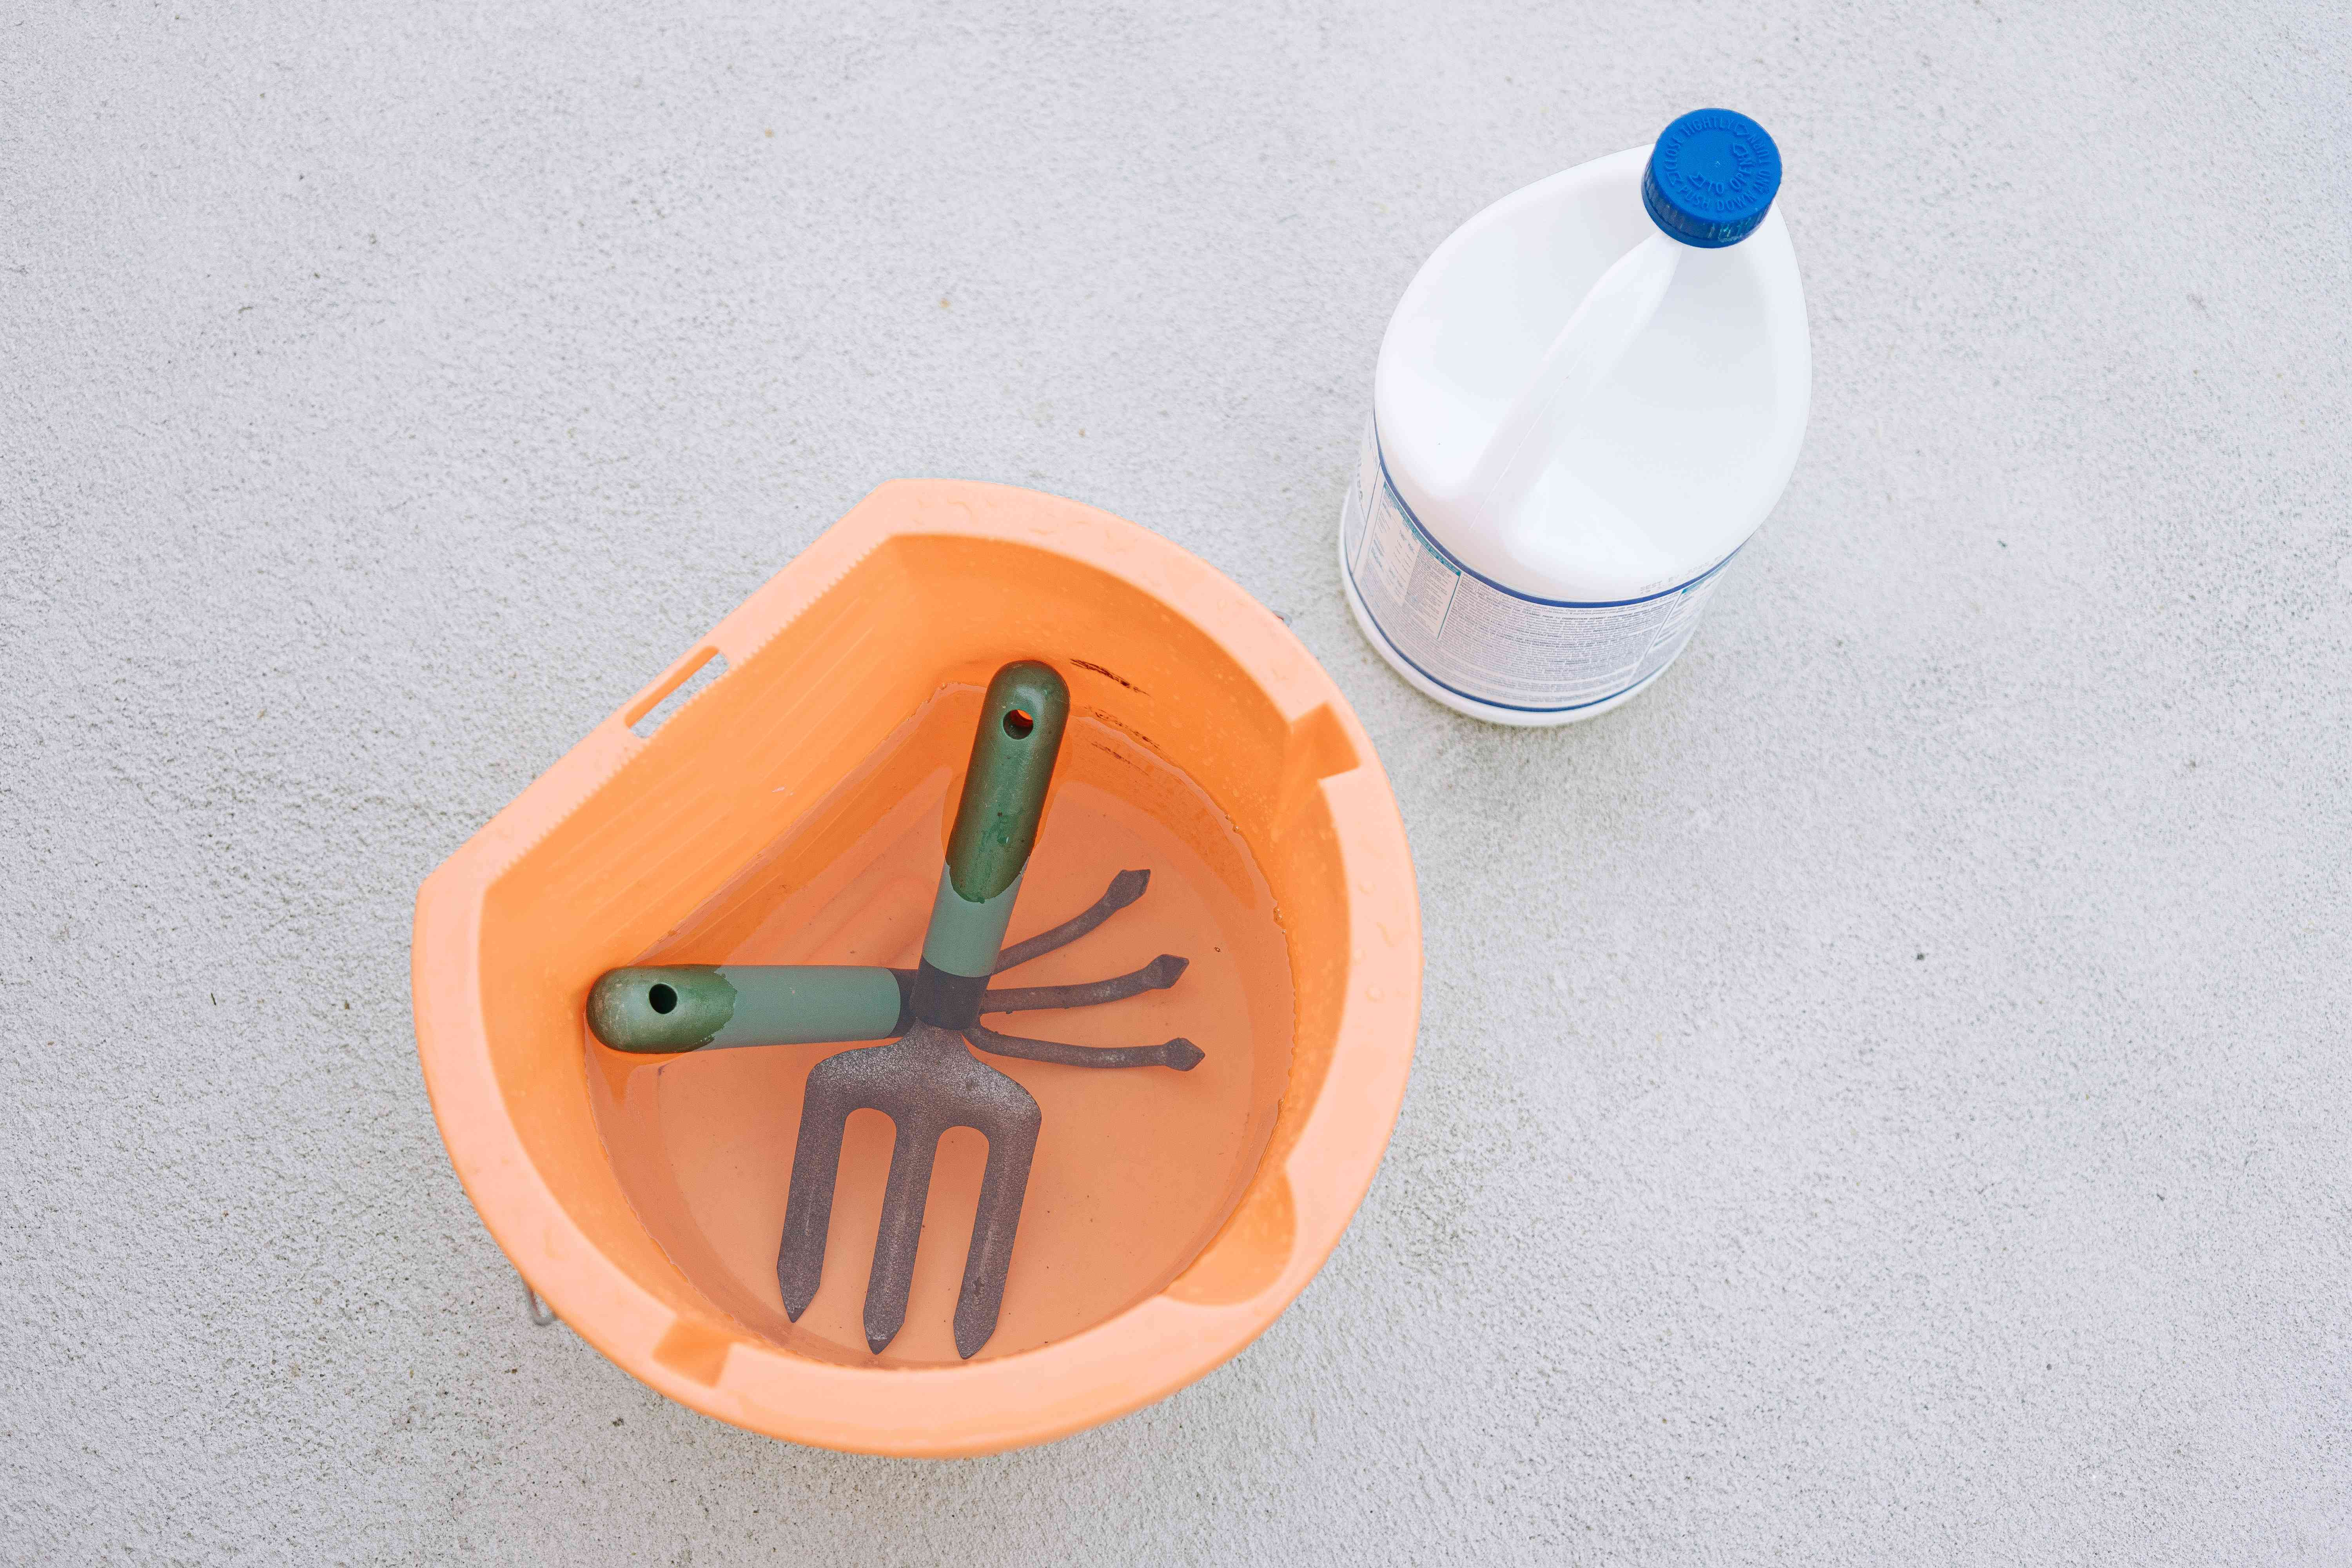 disinfecting tools in a bleach solution